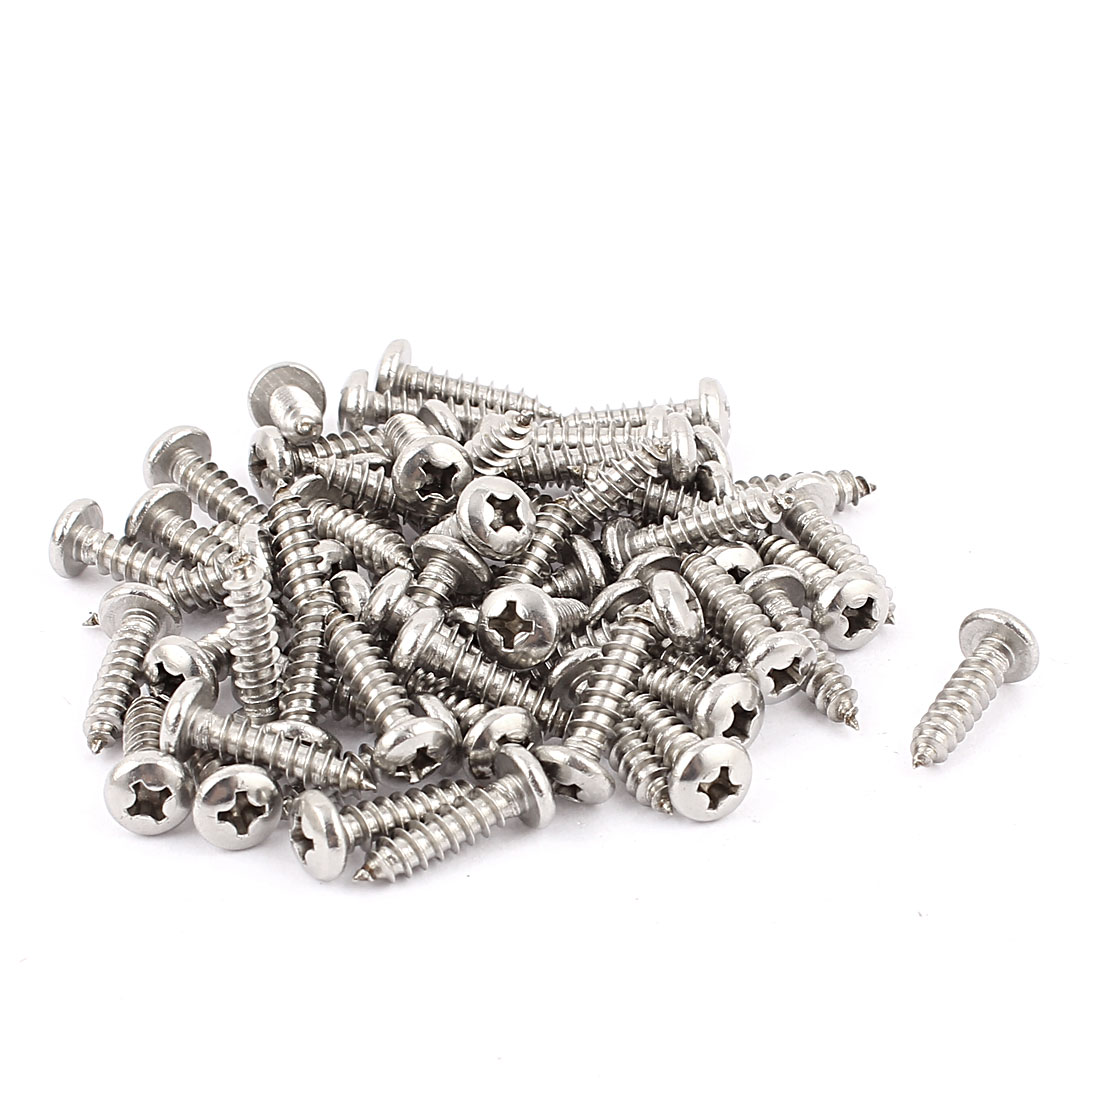 3.9mm x 16mm Pan Head Phillips Self Tapping Screw Fasteners Silver Tone 60 Pcs